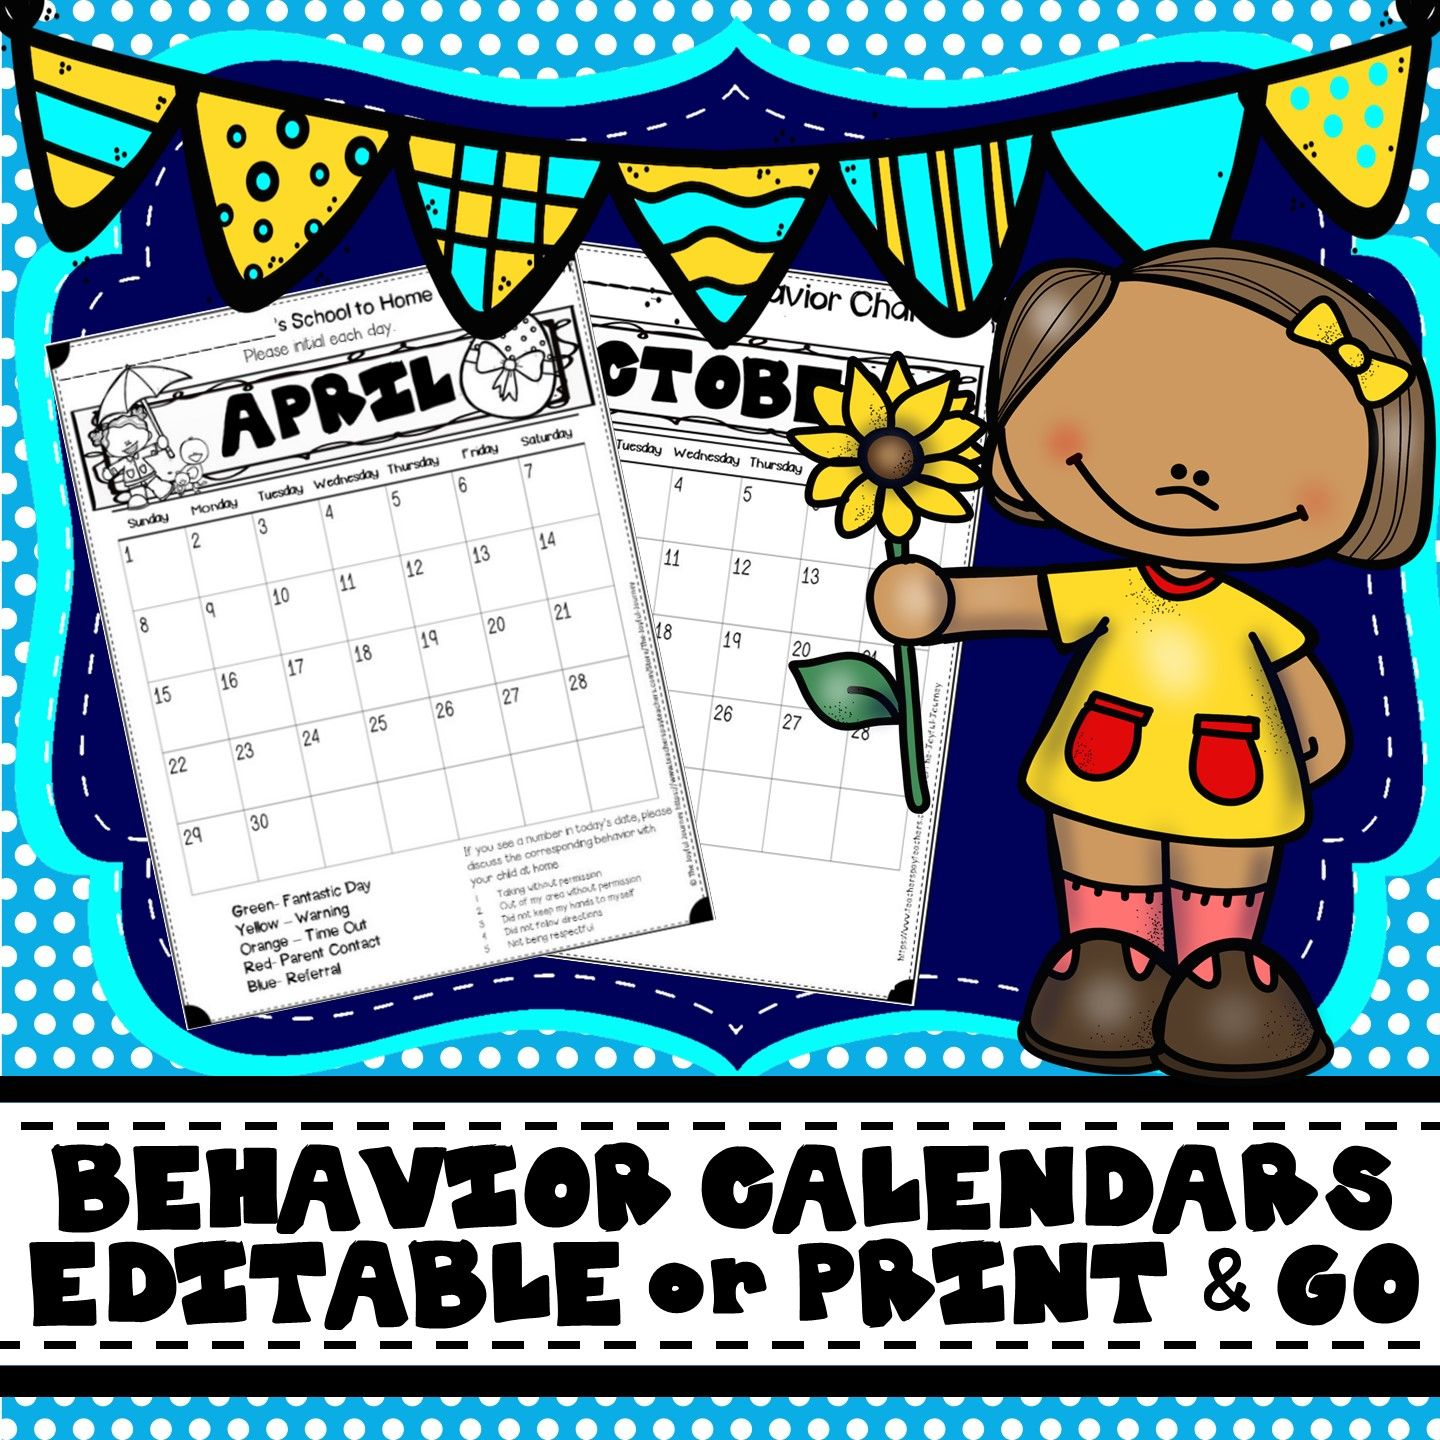 Behavior Calendars Editable